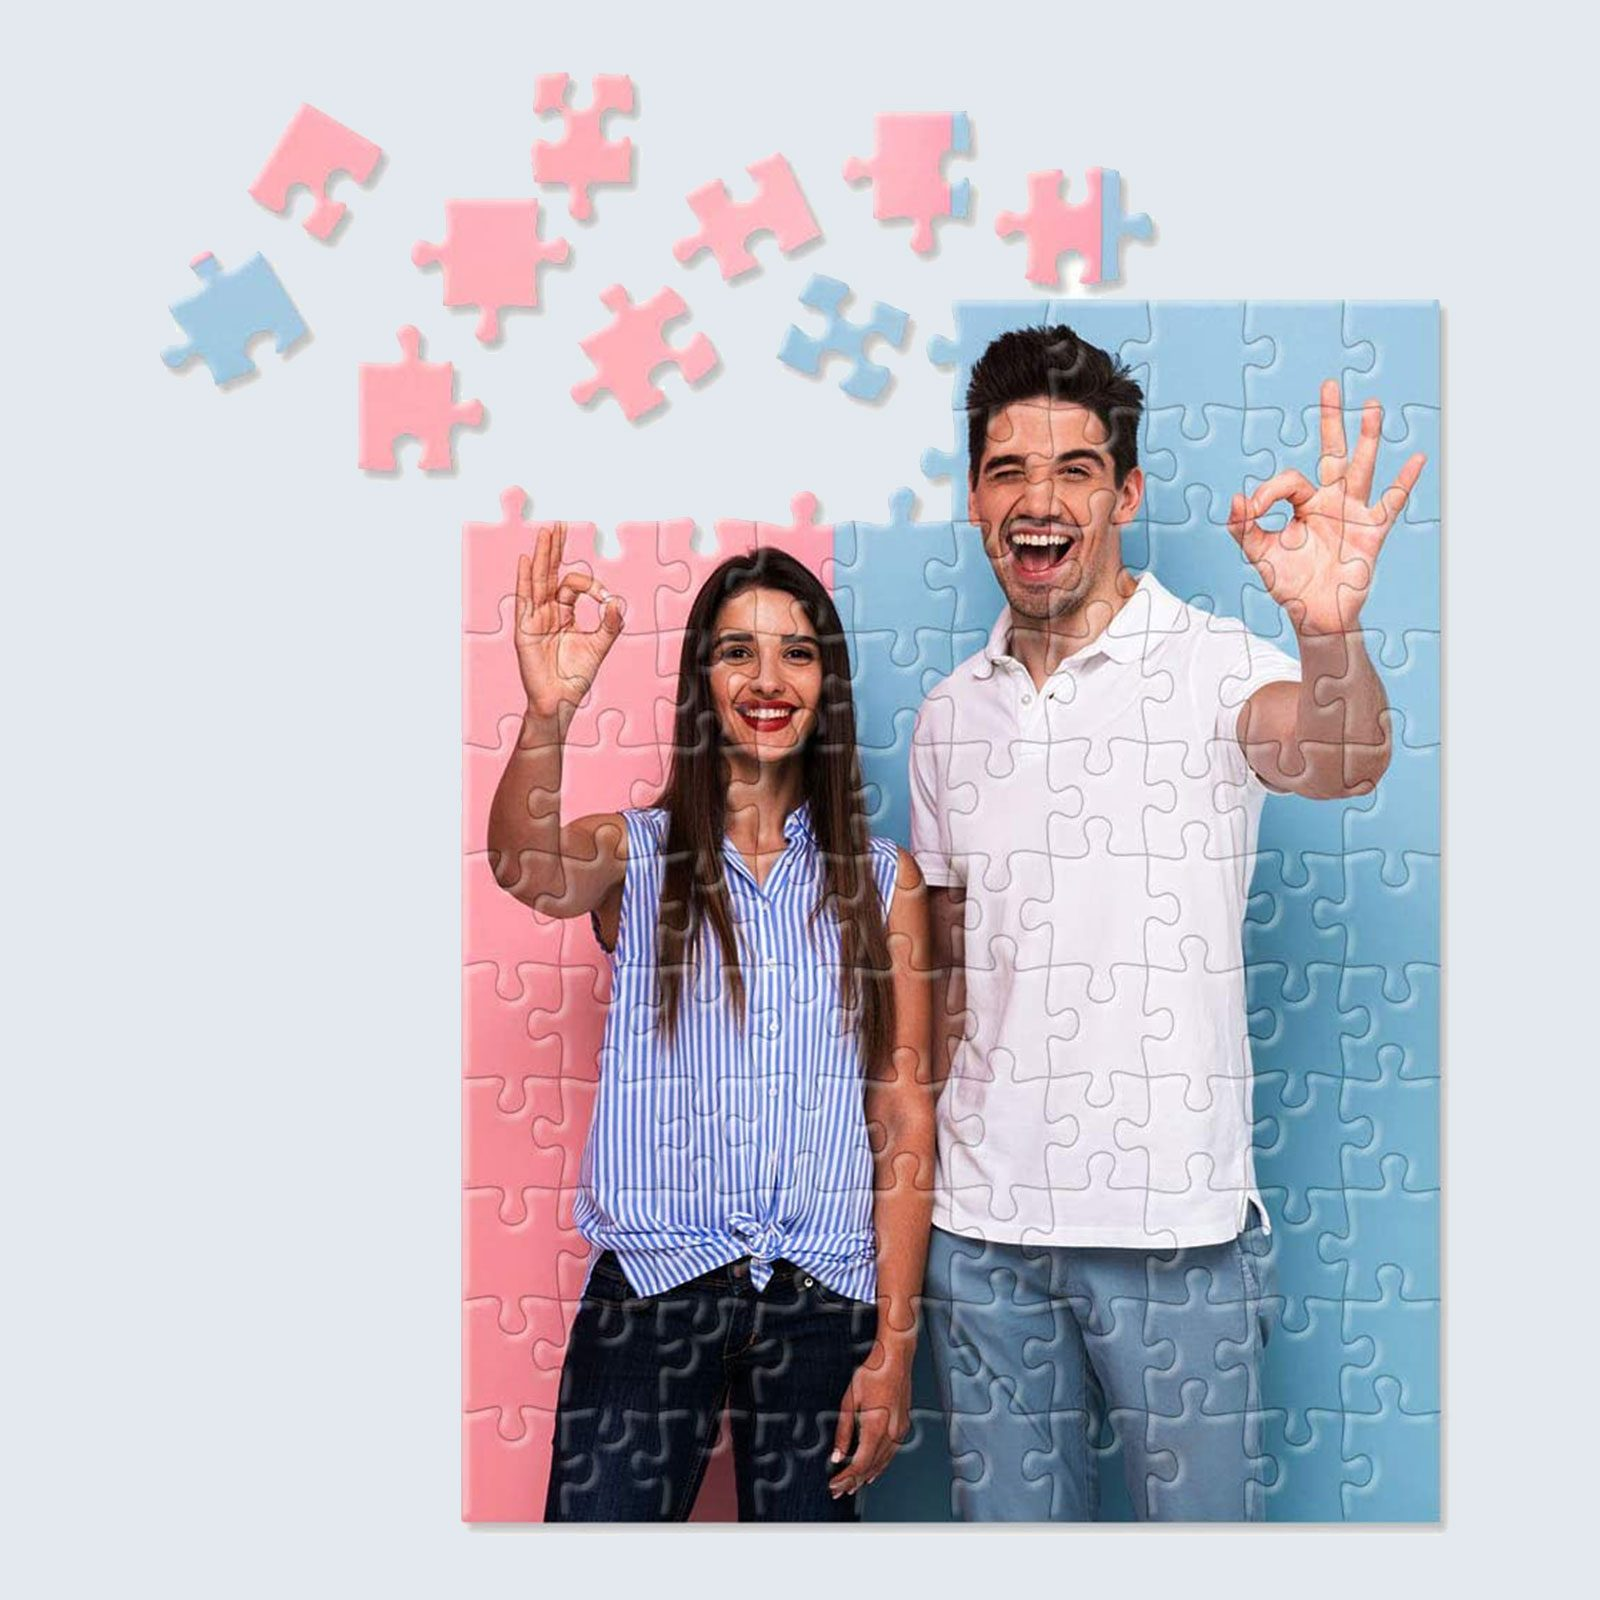 For the puzzle lover: Custom Personalized Jigsaw Puzzle